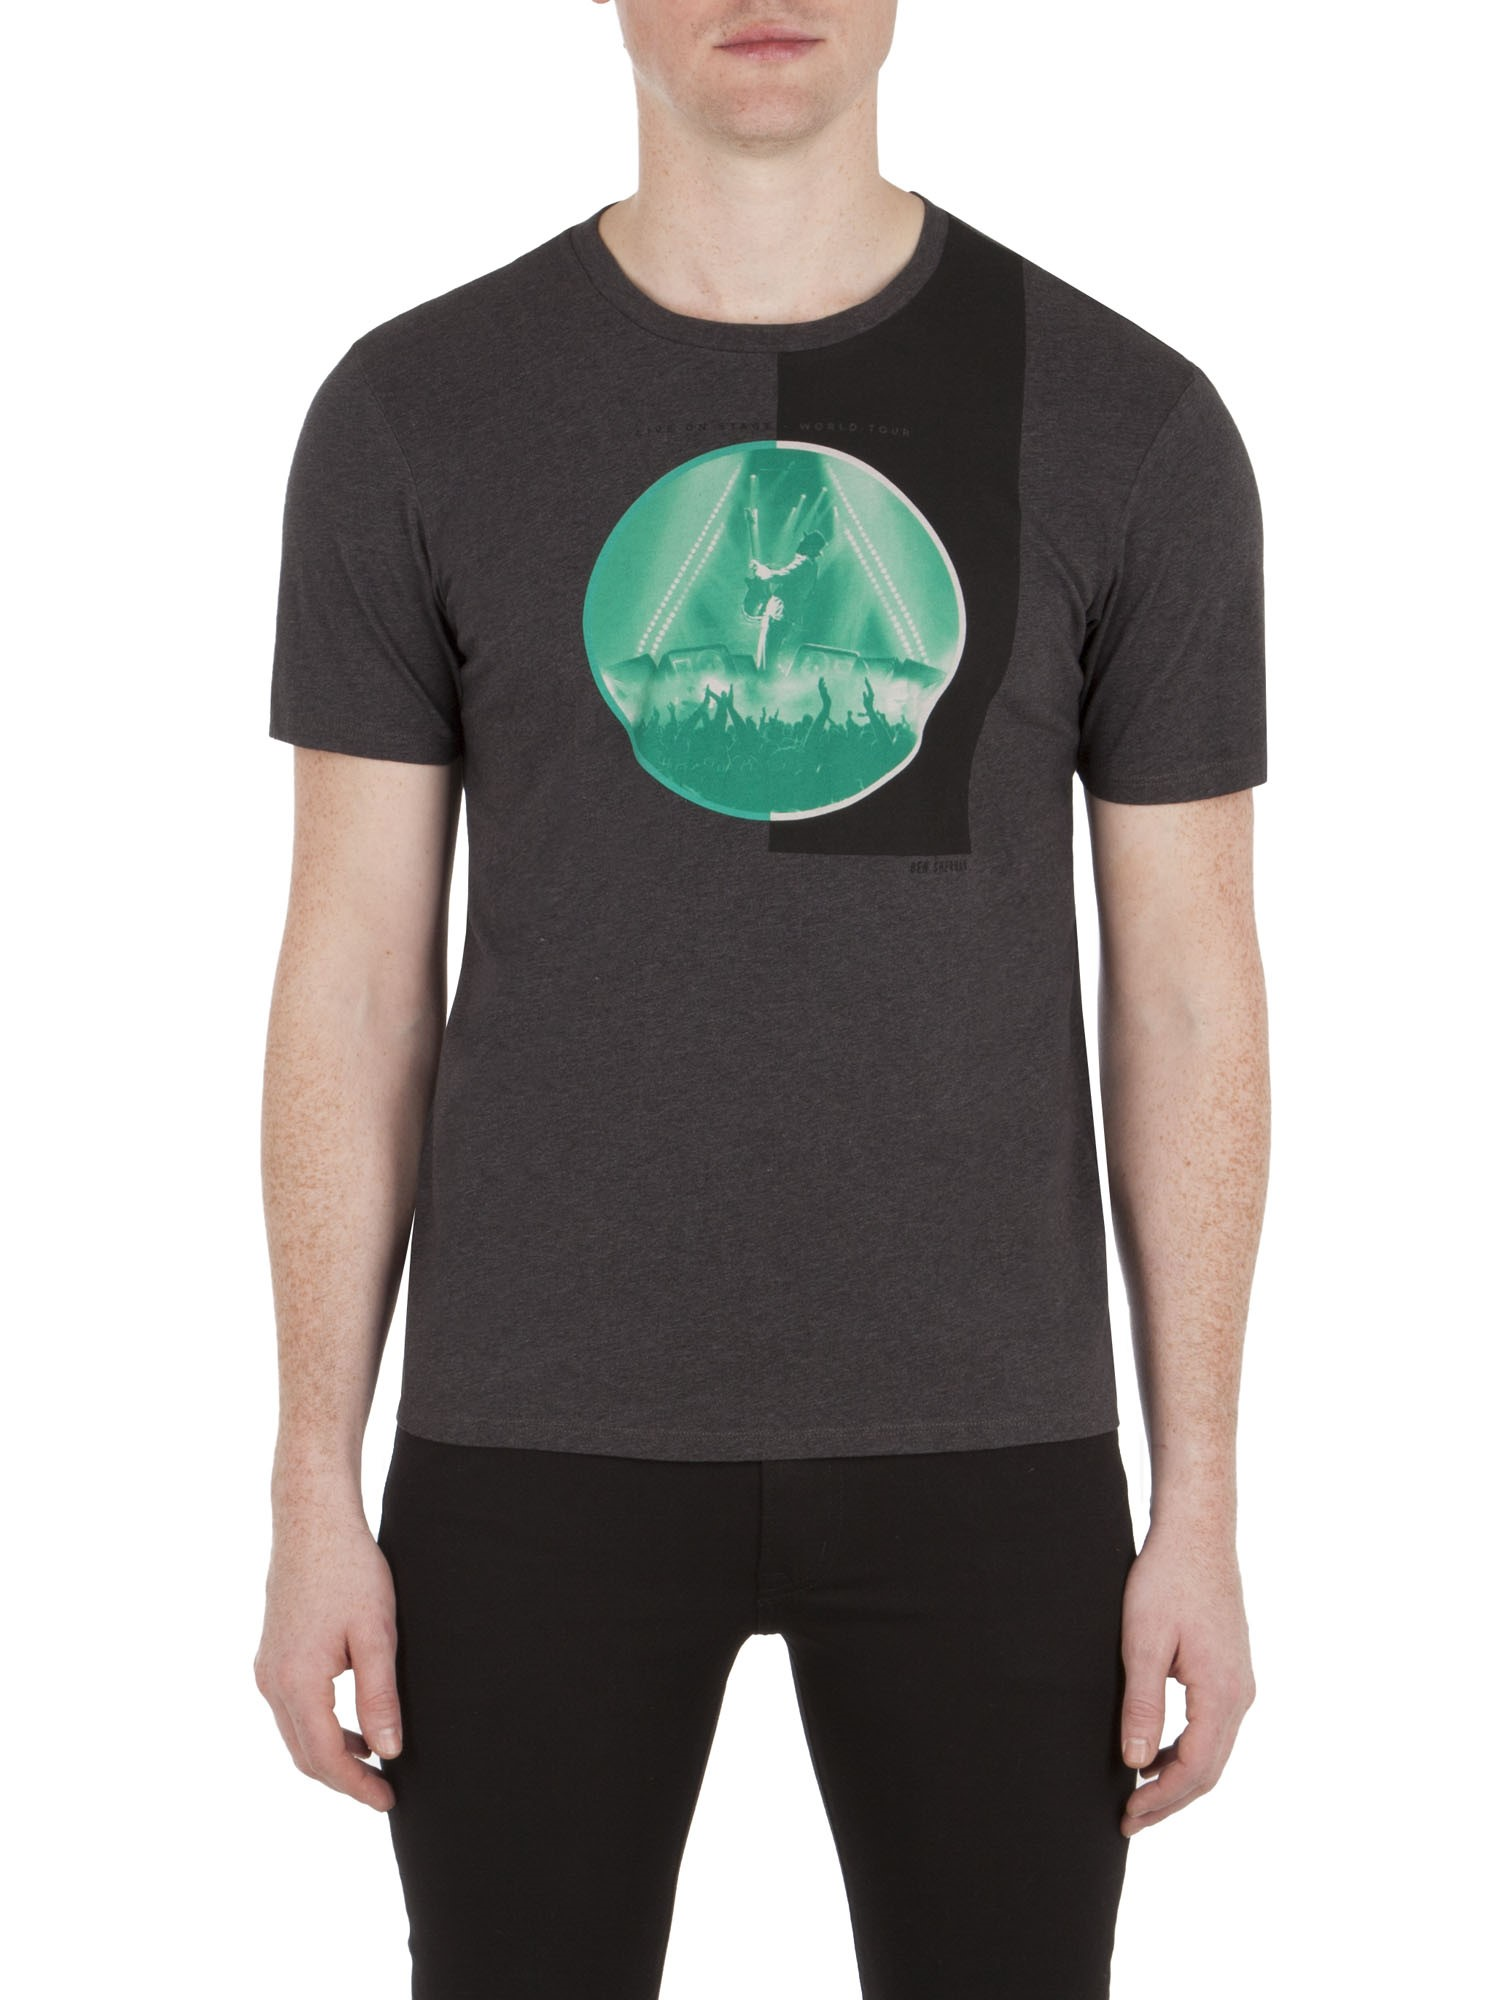 Ben Sherman Chimney Live On Stage T-Shirt Regular Fit (Mod Fit)